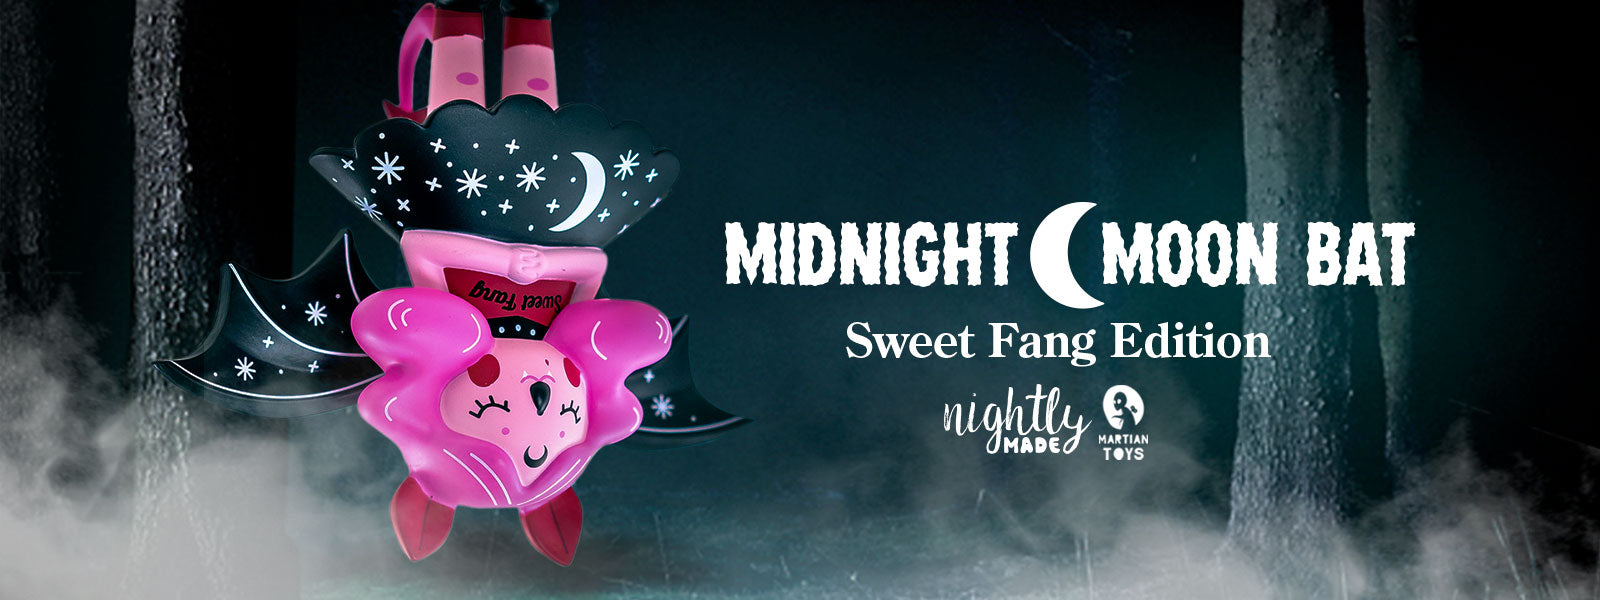 Artist Nightly Made / Megan O'brien Midnight Moon Bat Sweet Fang Edition - Kidrobot